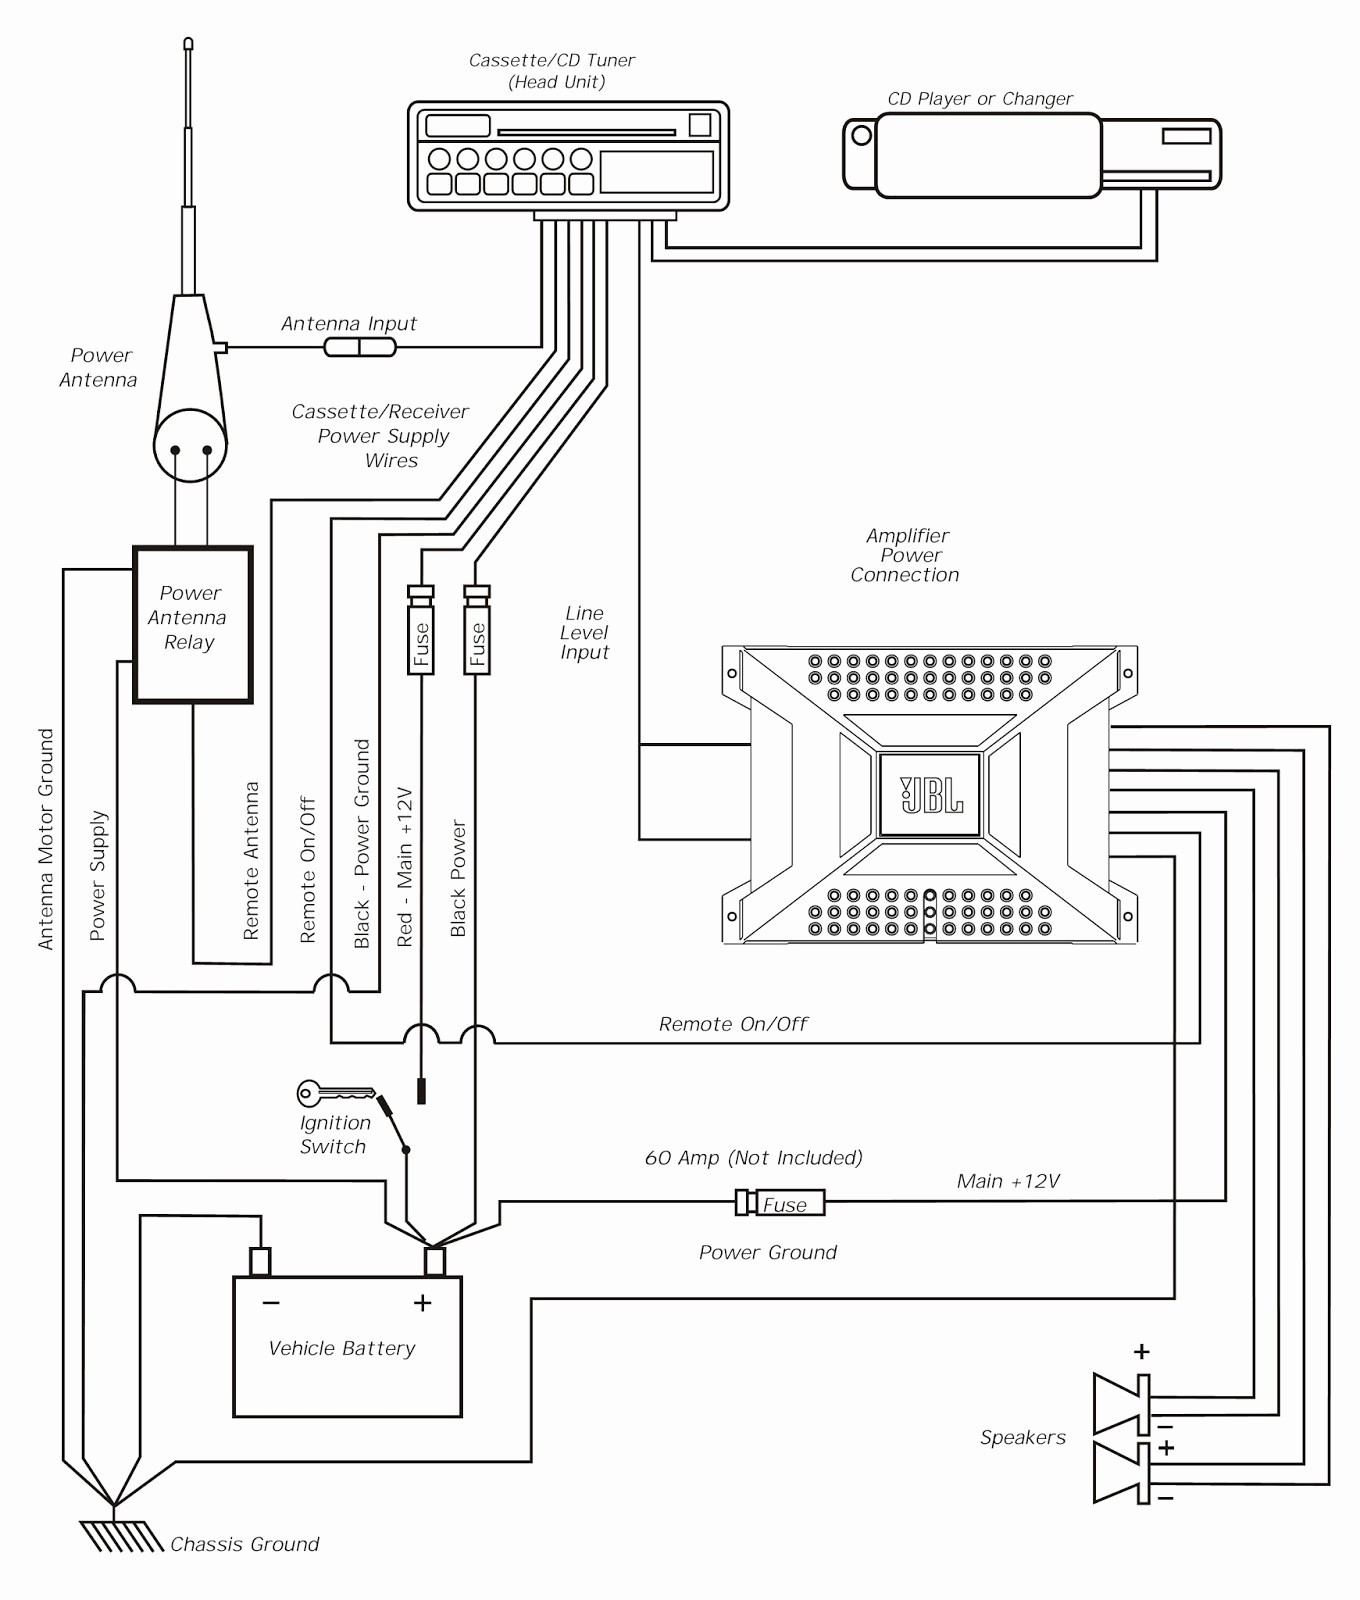 1999 Audi A4 Engine Diagram Audi A4 B5 Wiring Diagram Of 1999 Audi A4 Engine Diagram